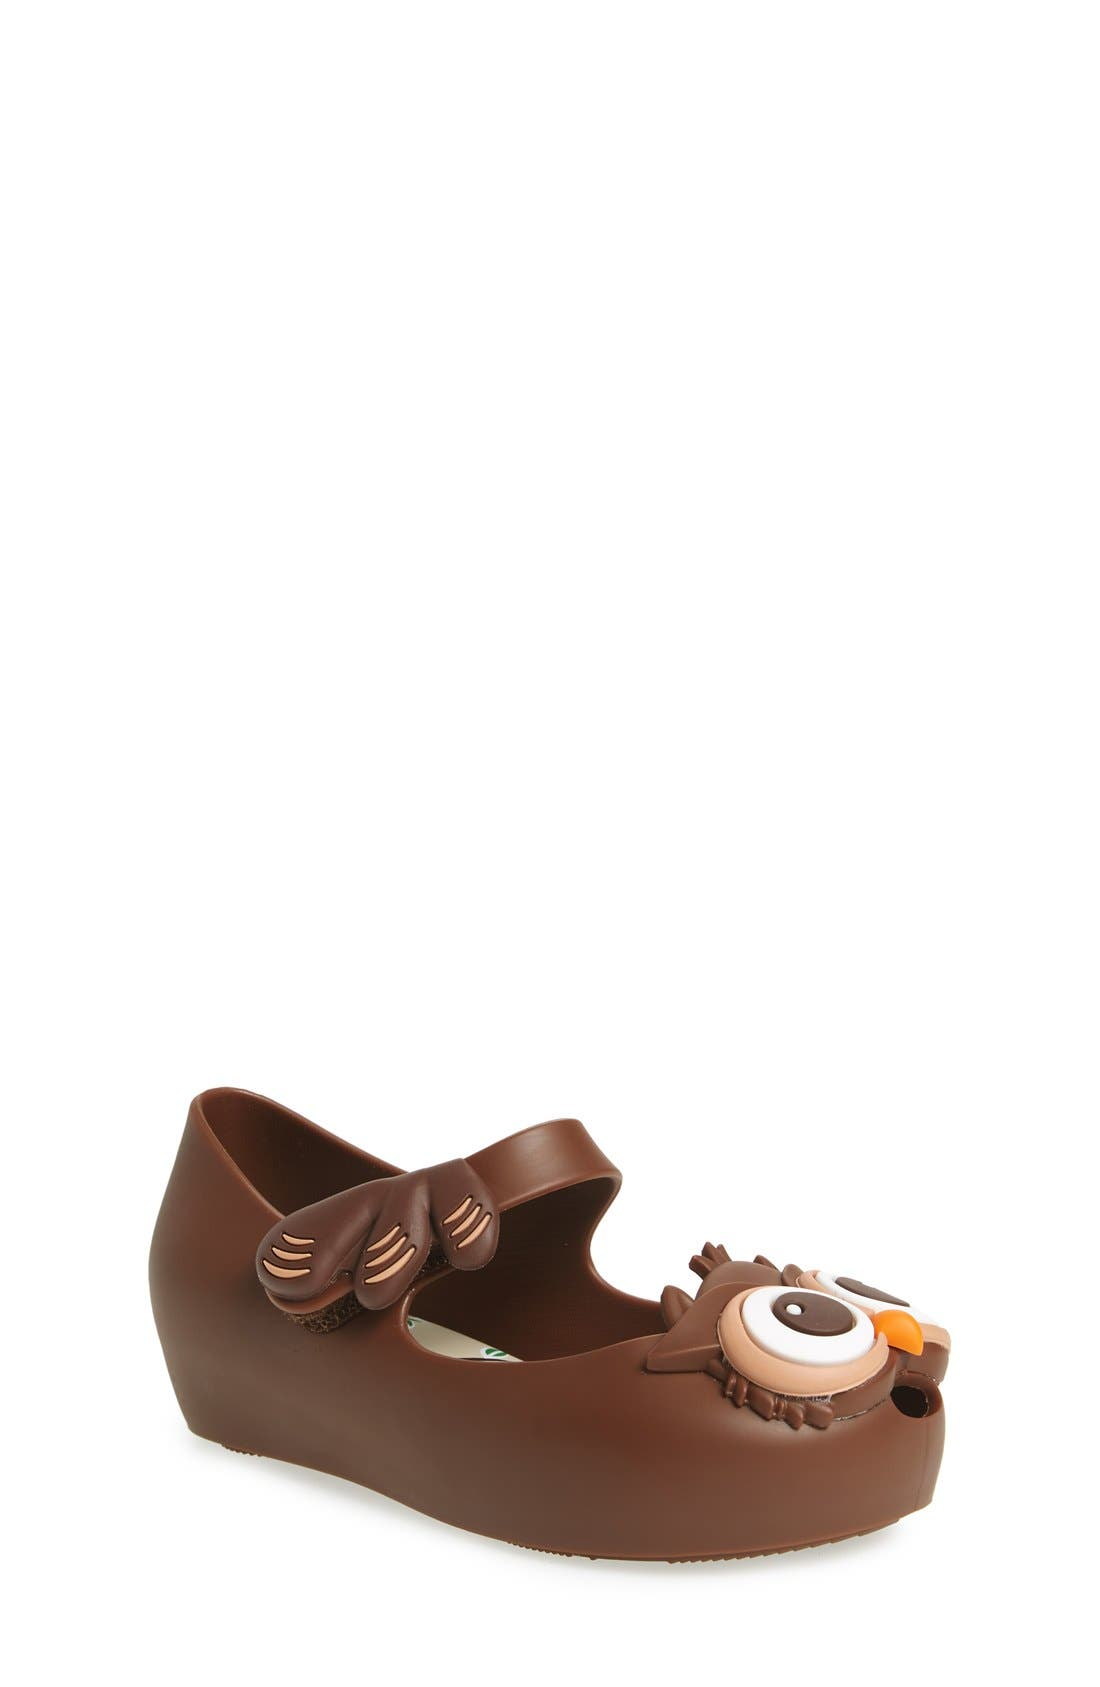 MINI MELISSA Ultragirl V Owl Slip-On Mary Jane